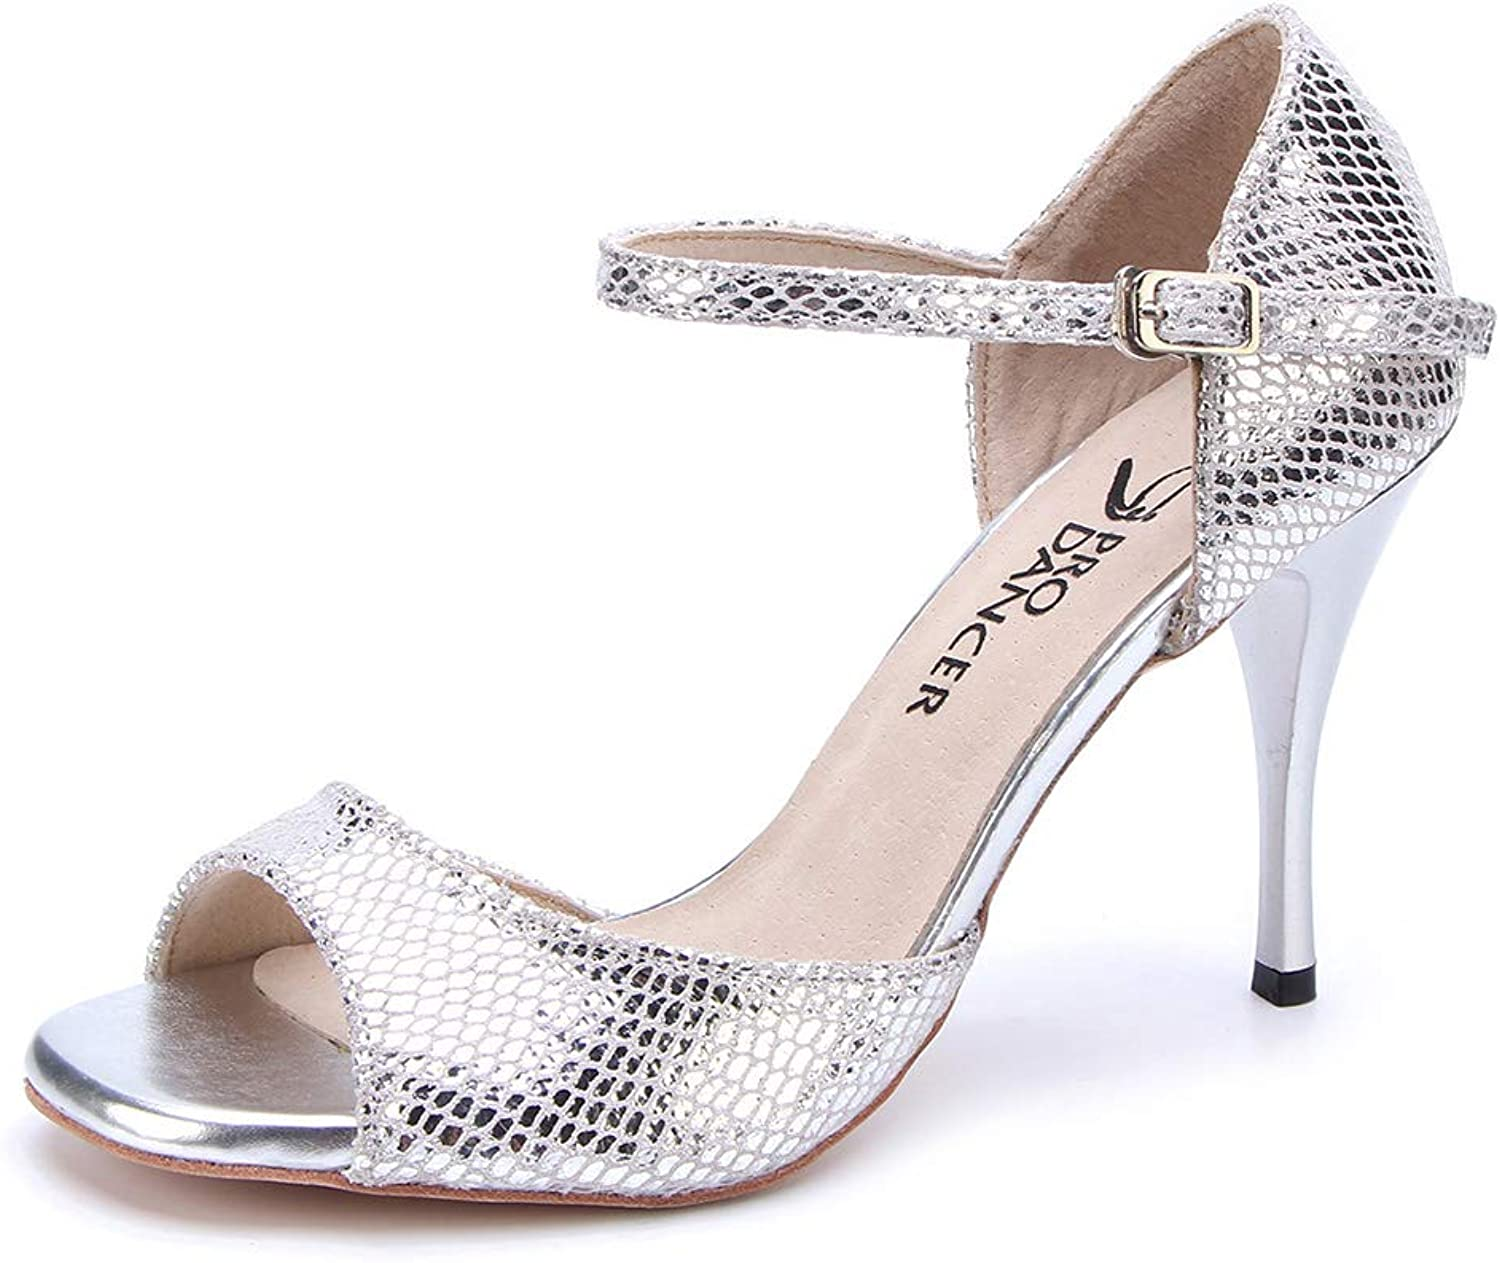 Pro Dancer Women silverina Tango Dance shoes Sandals Salsa shoes High Heel Leather Sole Silver